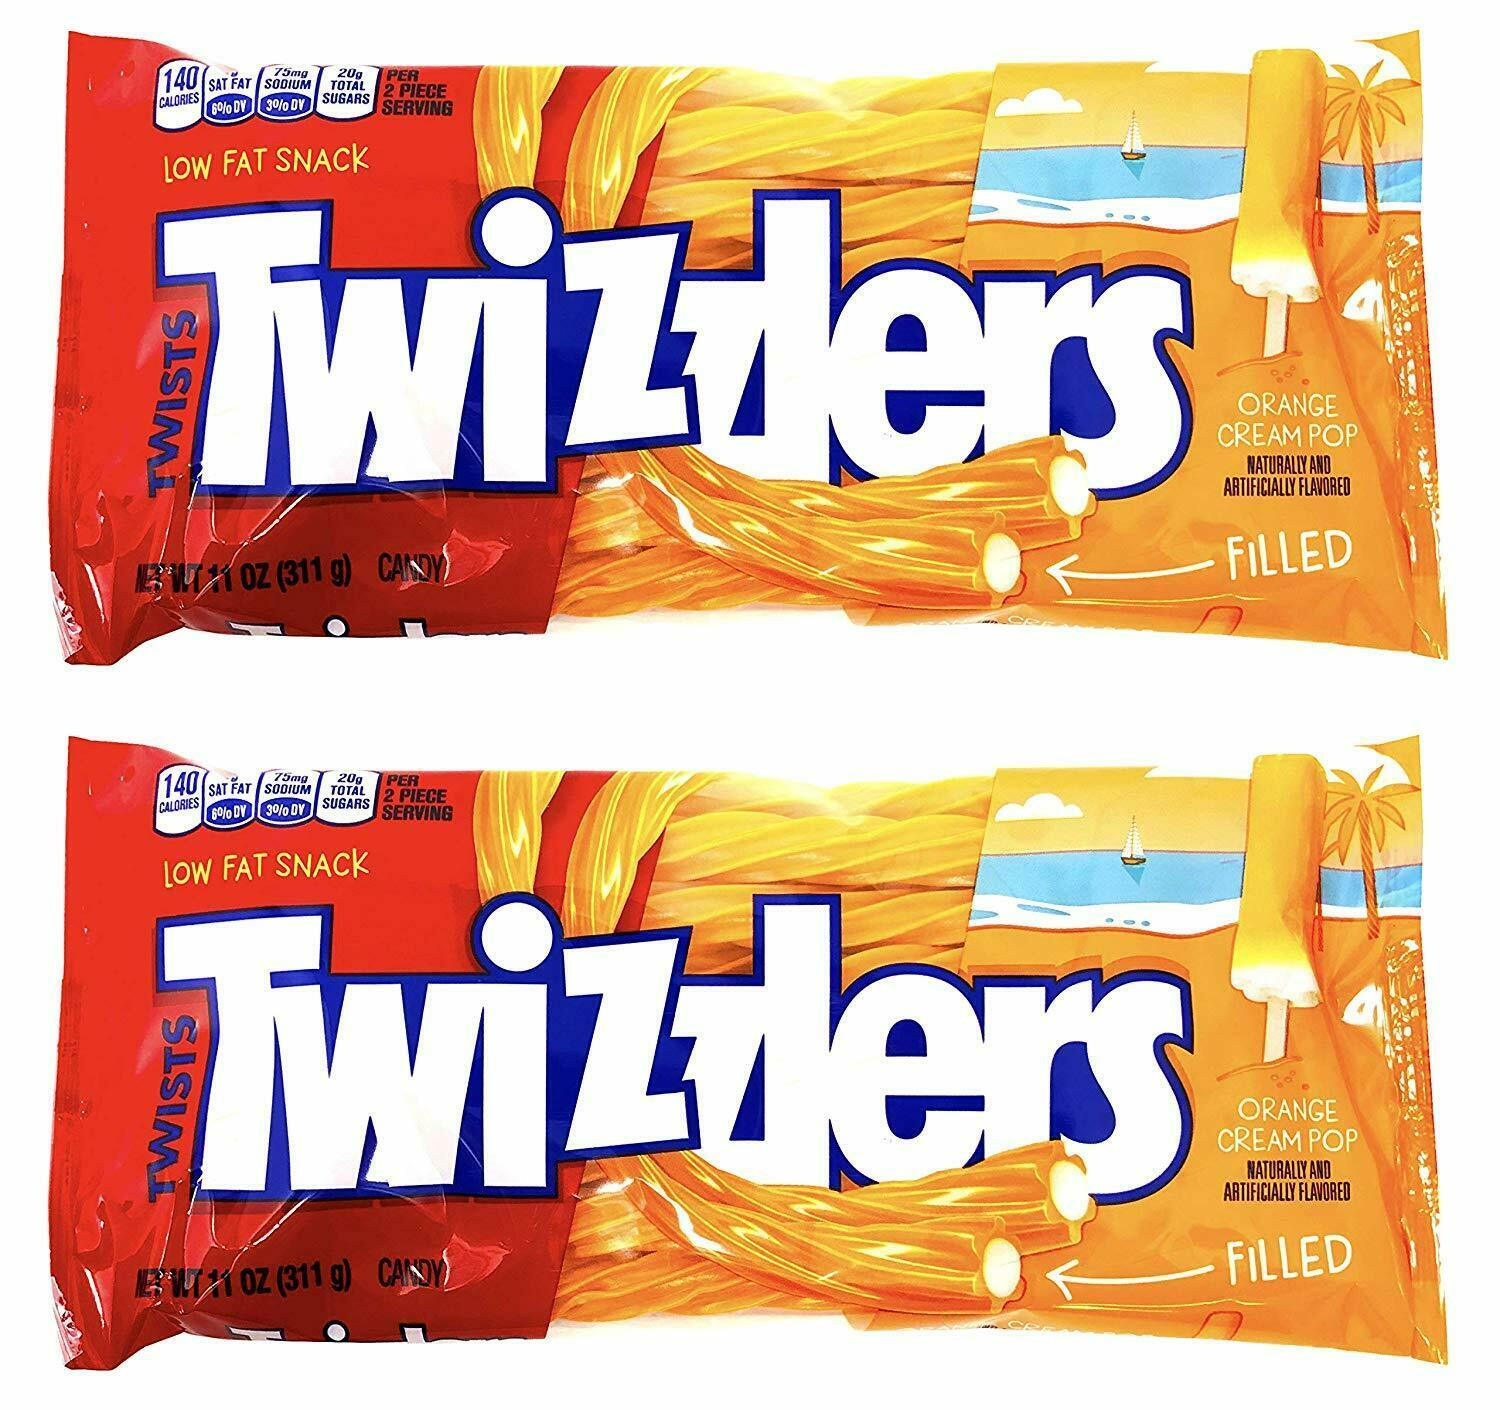 Primary image for Twizzlers Creamsicle Dreamsicle Popsicle Orange Cream Pop Filled Twists 2 PACK